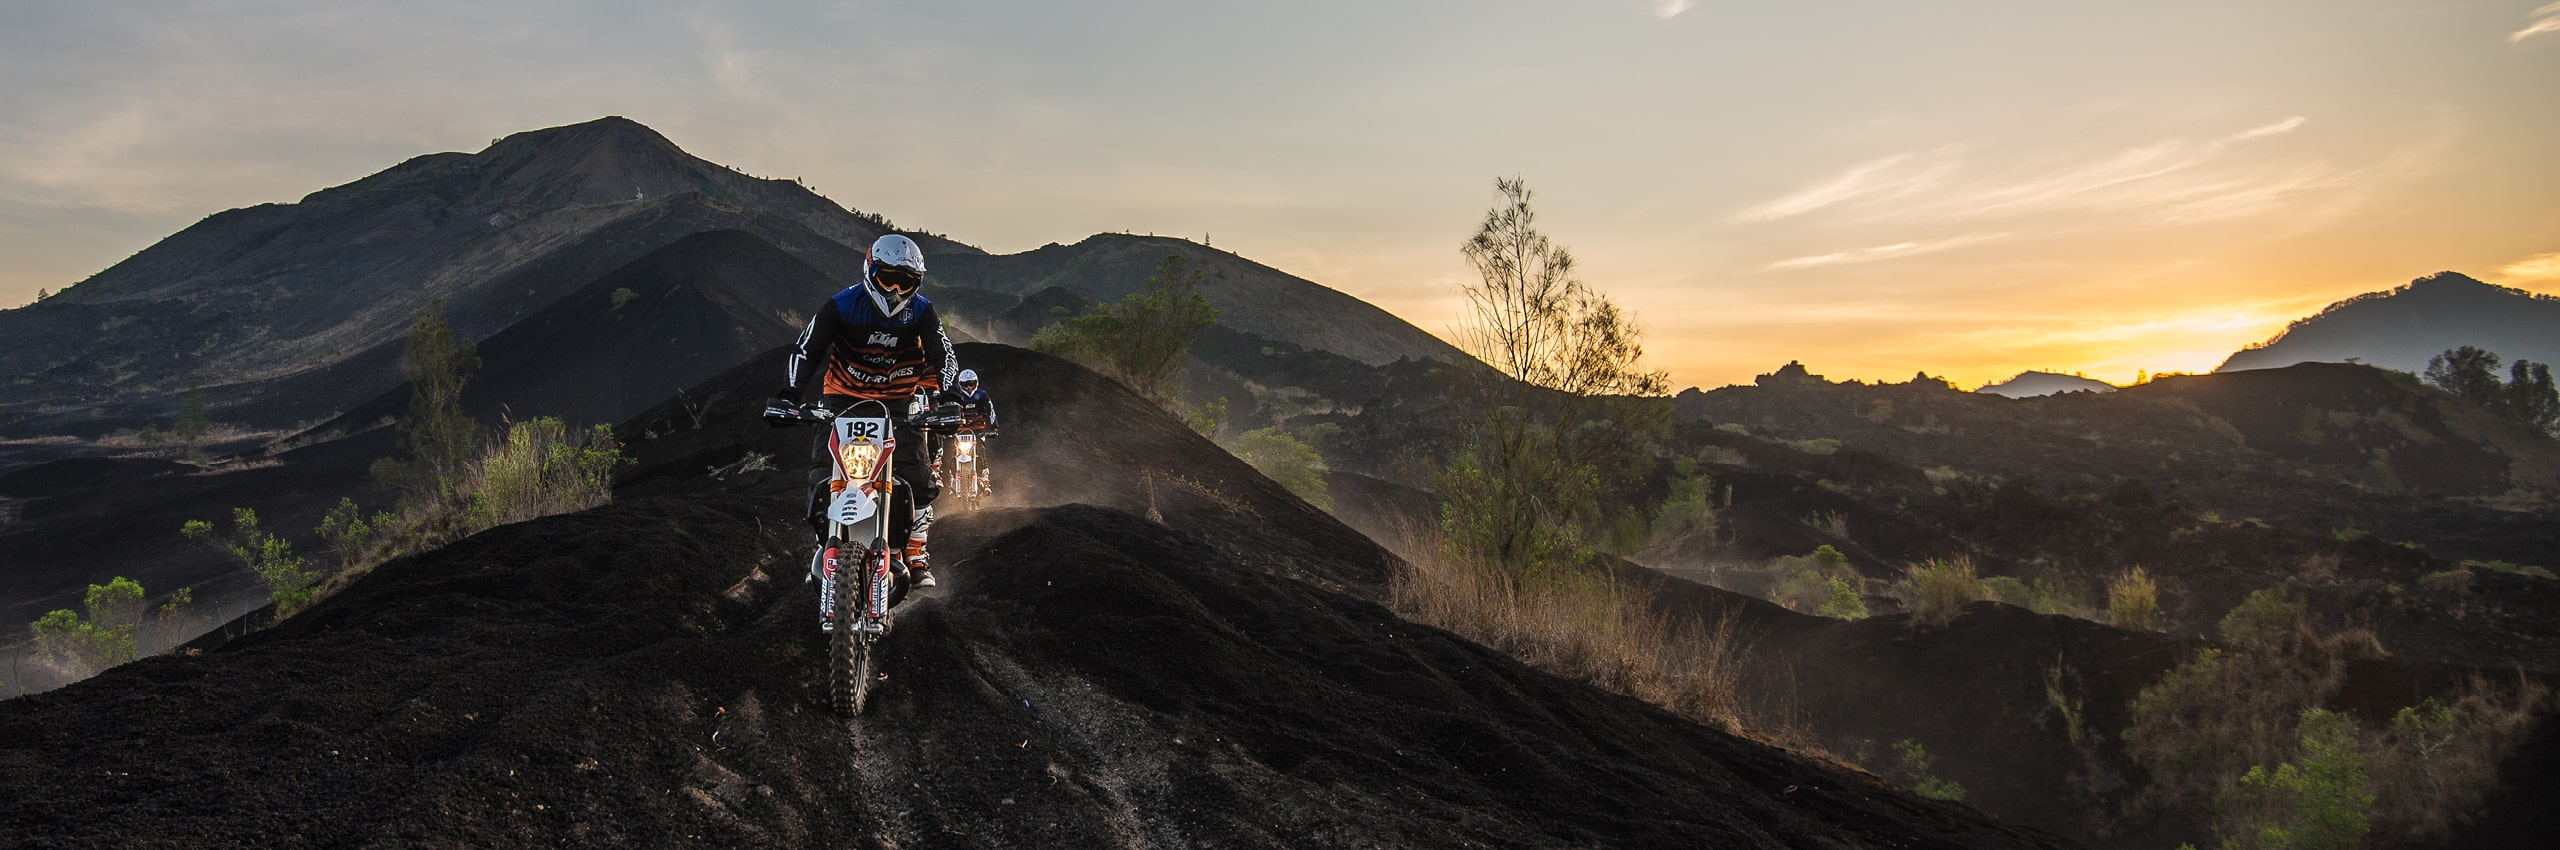 Bali_Dirt_Bikes_Kintamani_Black_Lava_Slider8